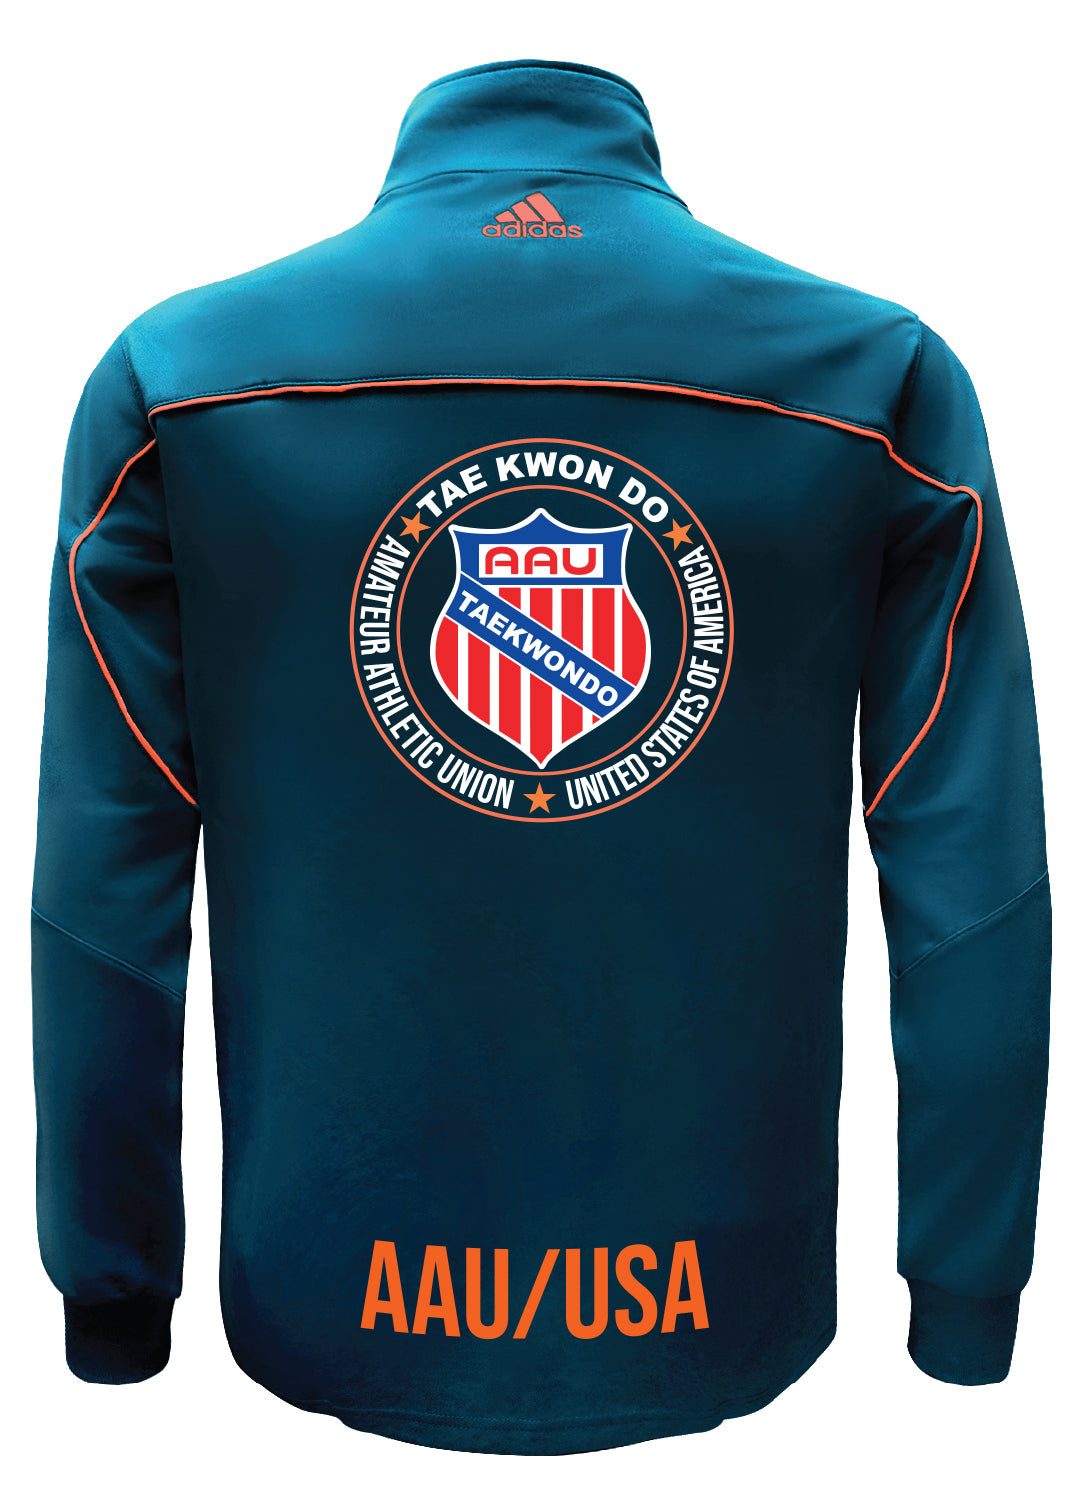 Official 2020 AAU TKD National Team Member Parents & Family Jacket